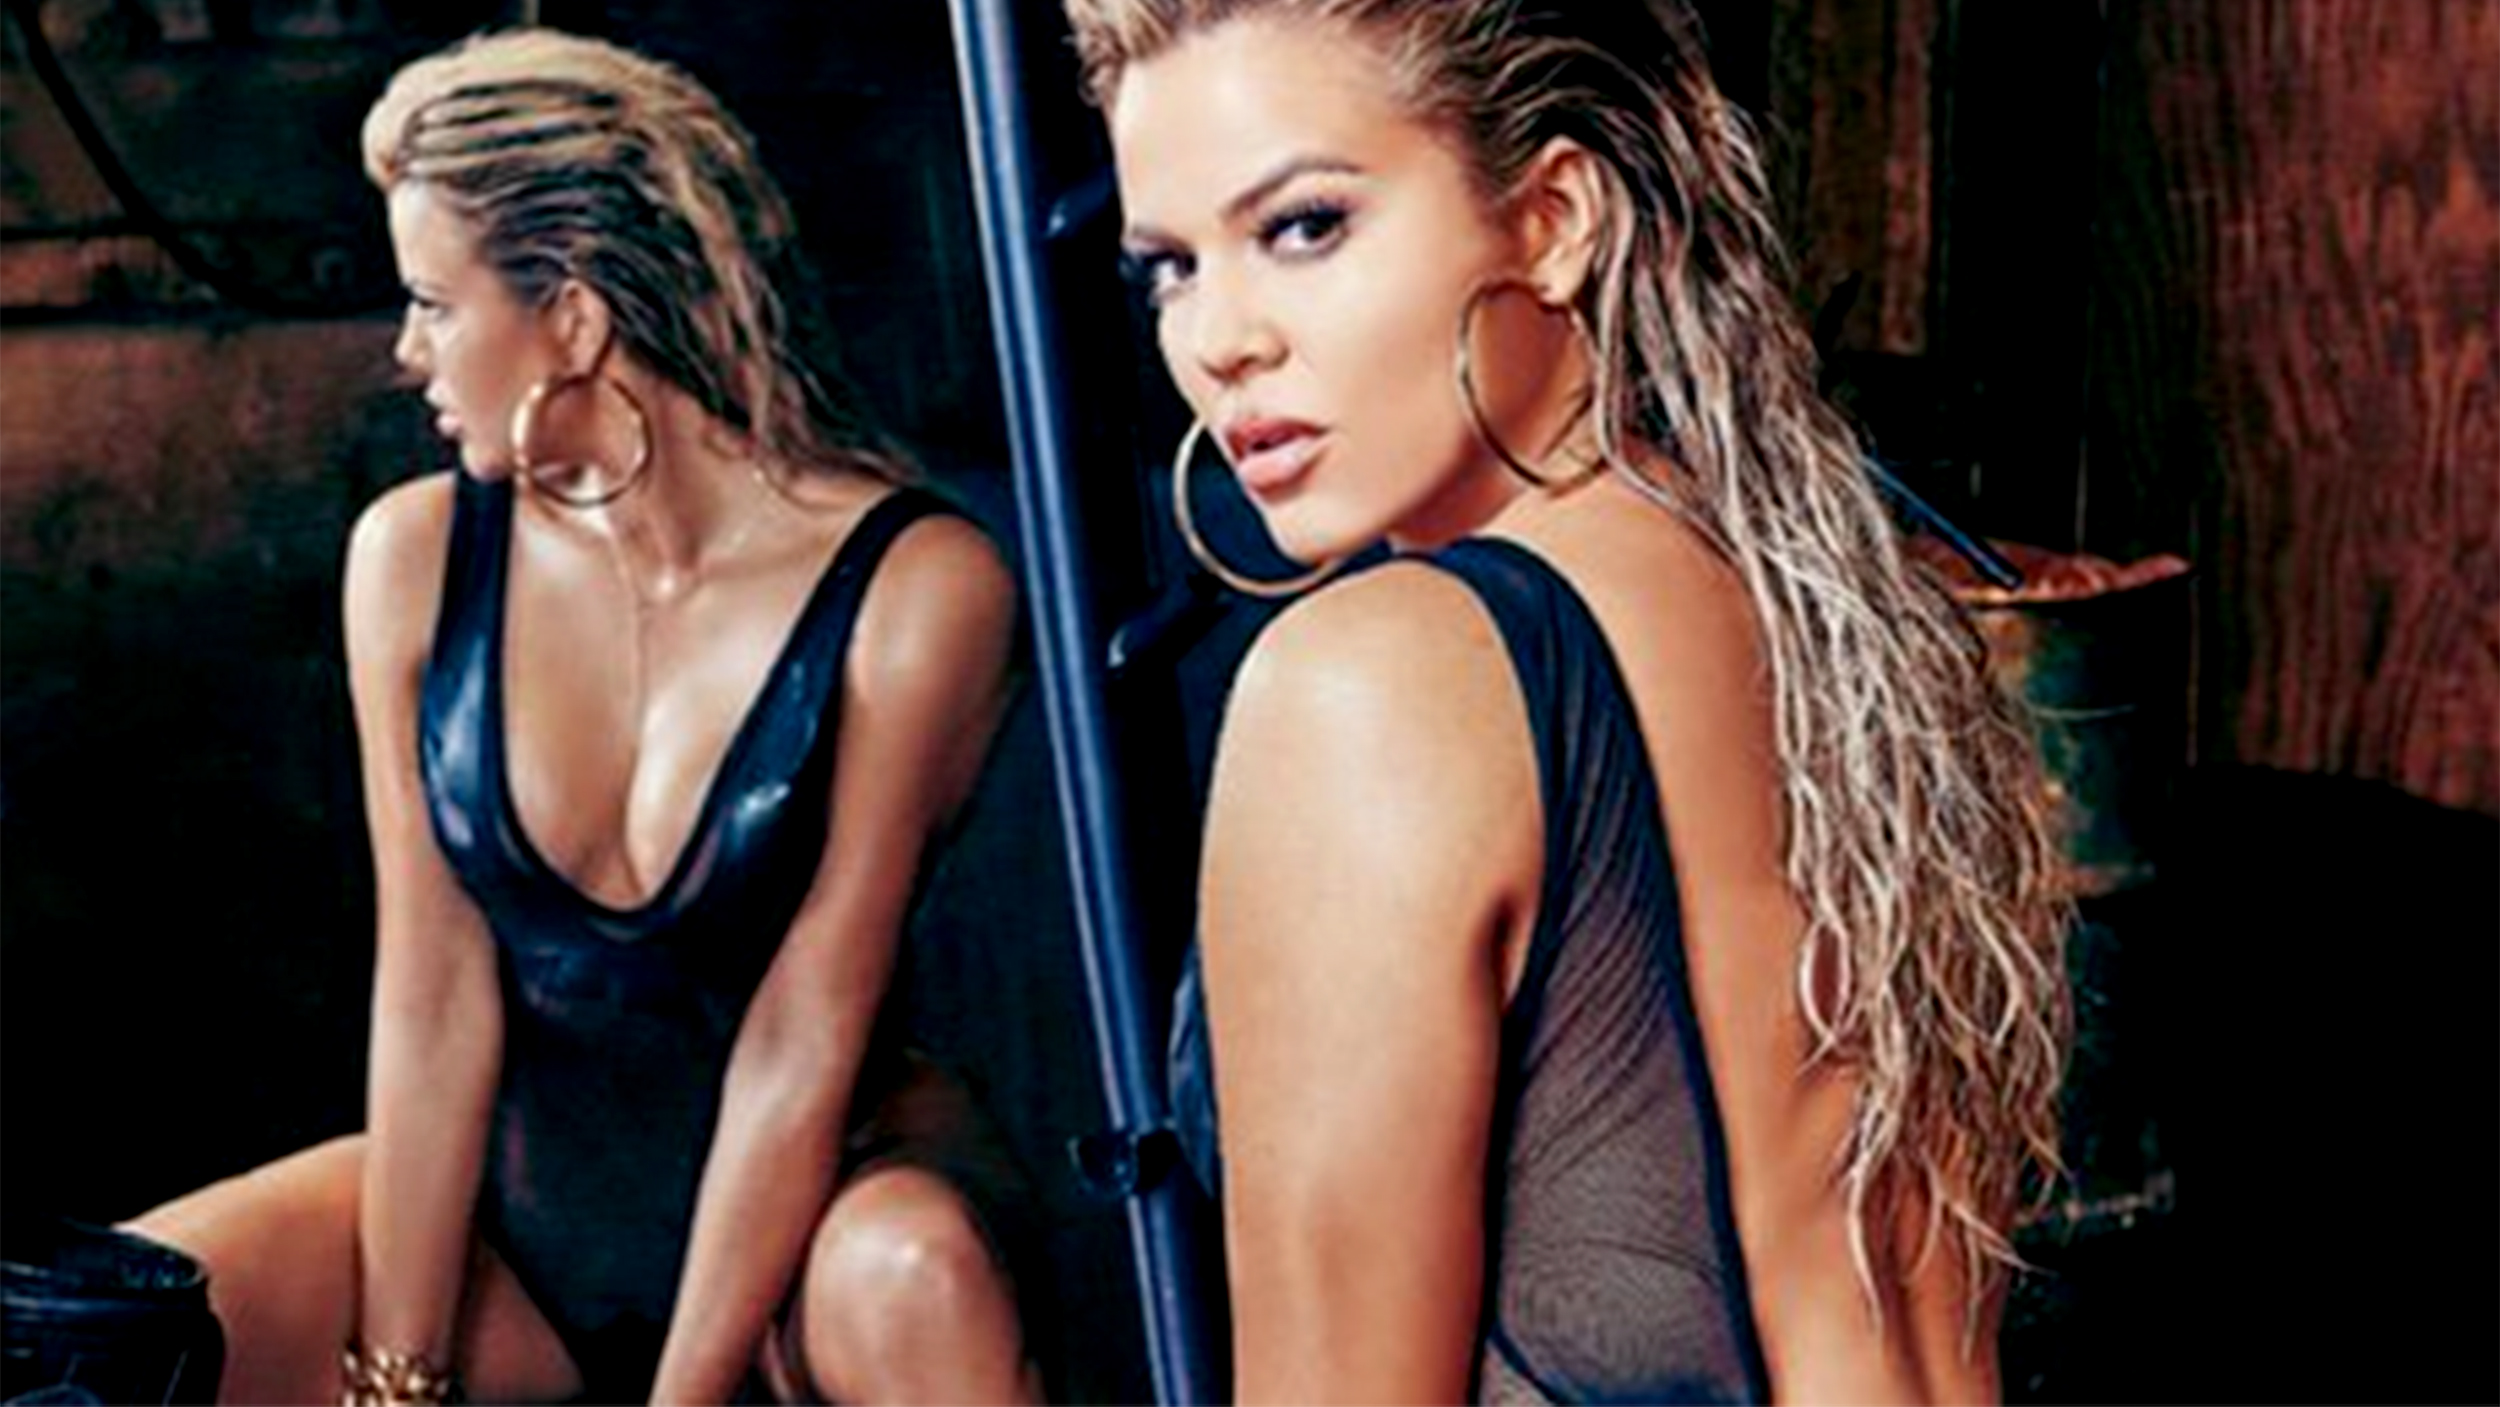 Khloe Kardashian Posts Unretouched Complex Photo Give Me An Ounce Of Credit